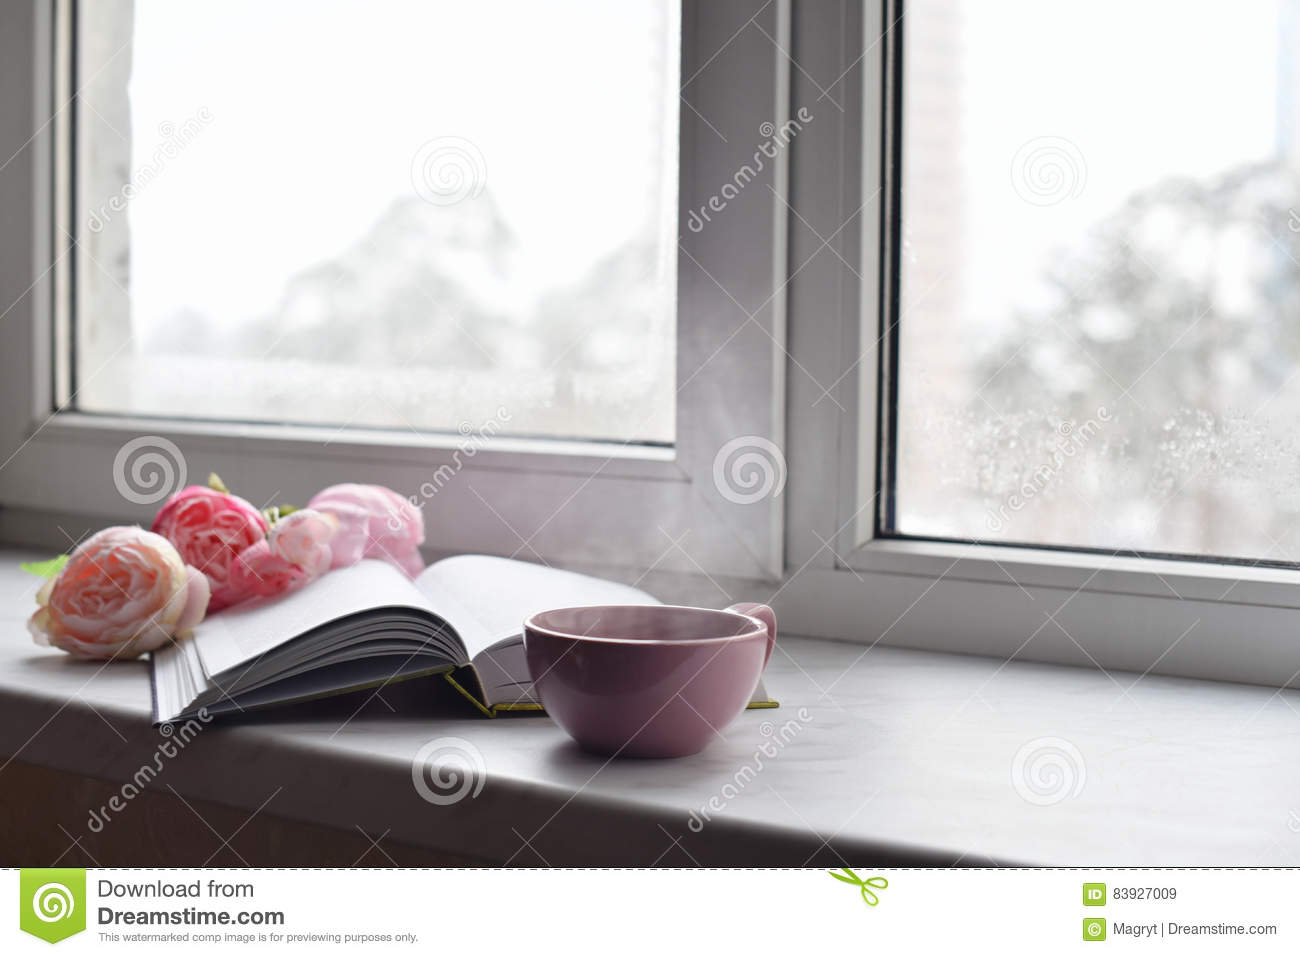 Cozy home still life: cup of hot coffee, spring flowers and opened book with warm plaid on windowsill against snow